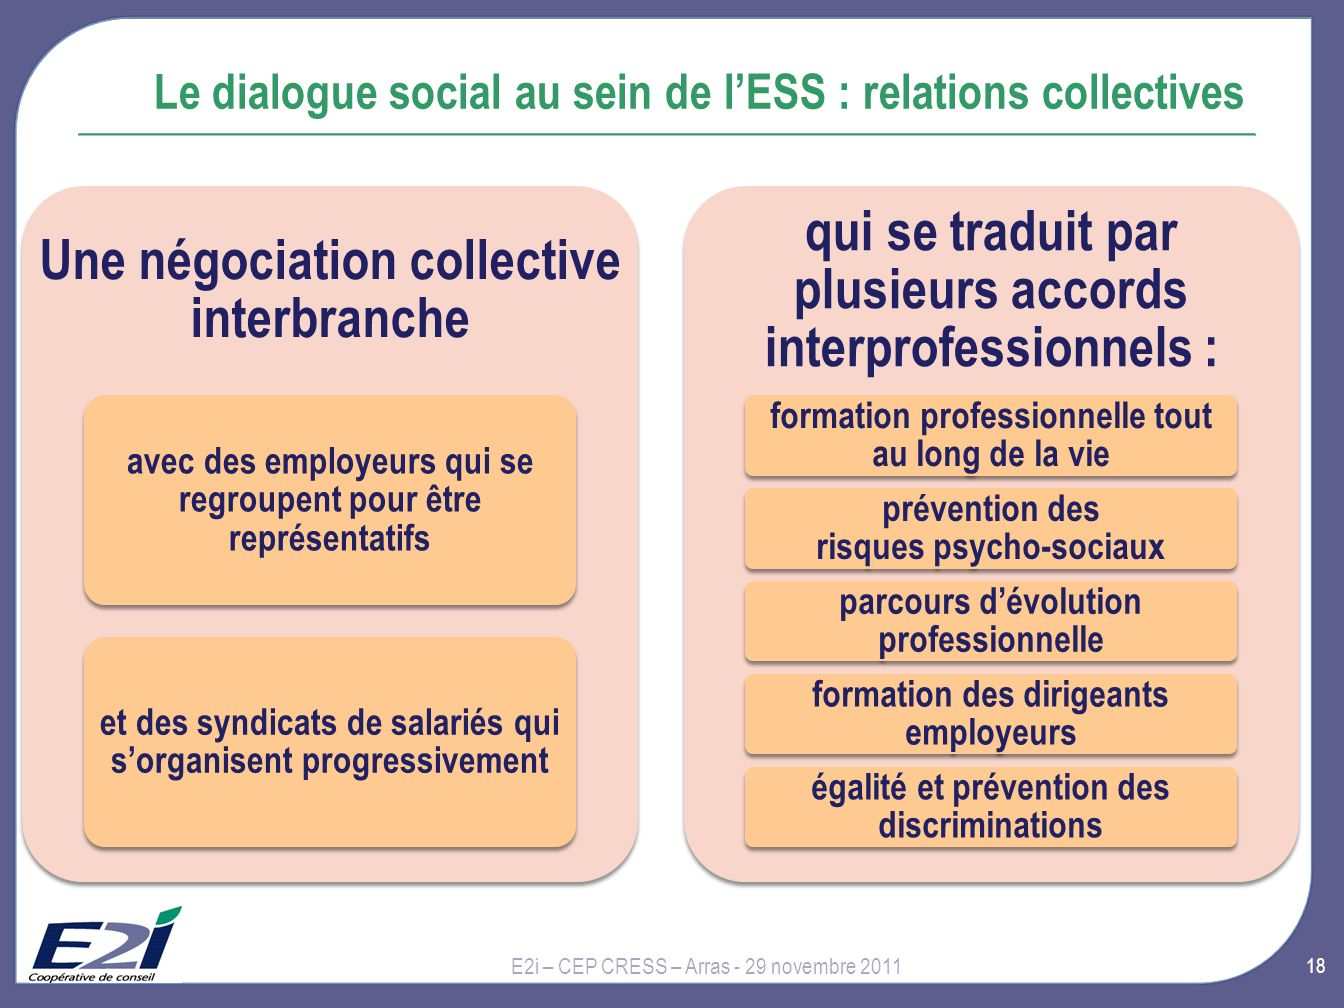 Le dialogue social au sein de l'ESS : relations collectives